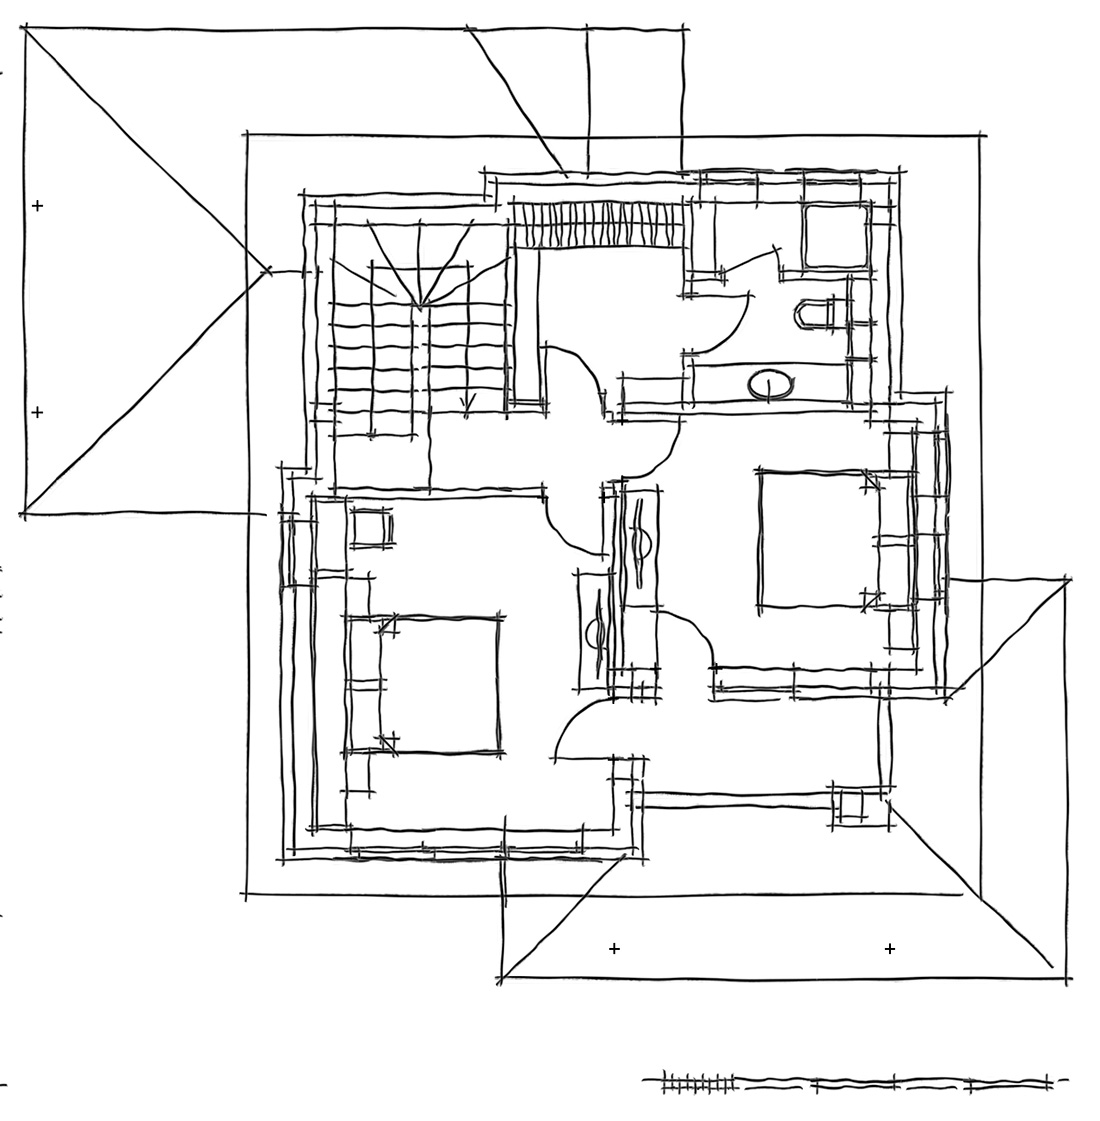 Oregano - A one family house, Built-up area: 118 sq. m., First floor: Built-up area: 52.2 sq. m., Terrace: 18.7 sq. m., Sheds: 15.6 sq. m., Second floor: Built-up area: 60.7 sq. m., Terrace: 4.5 sq. m.